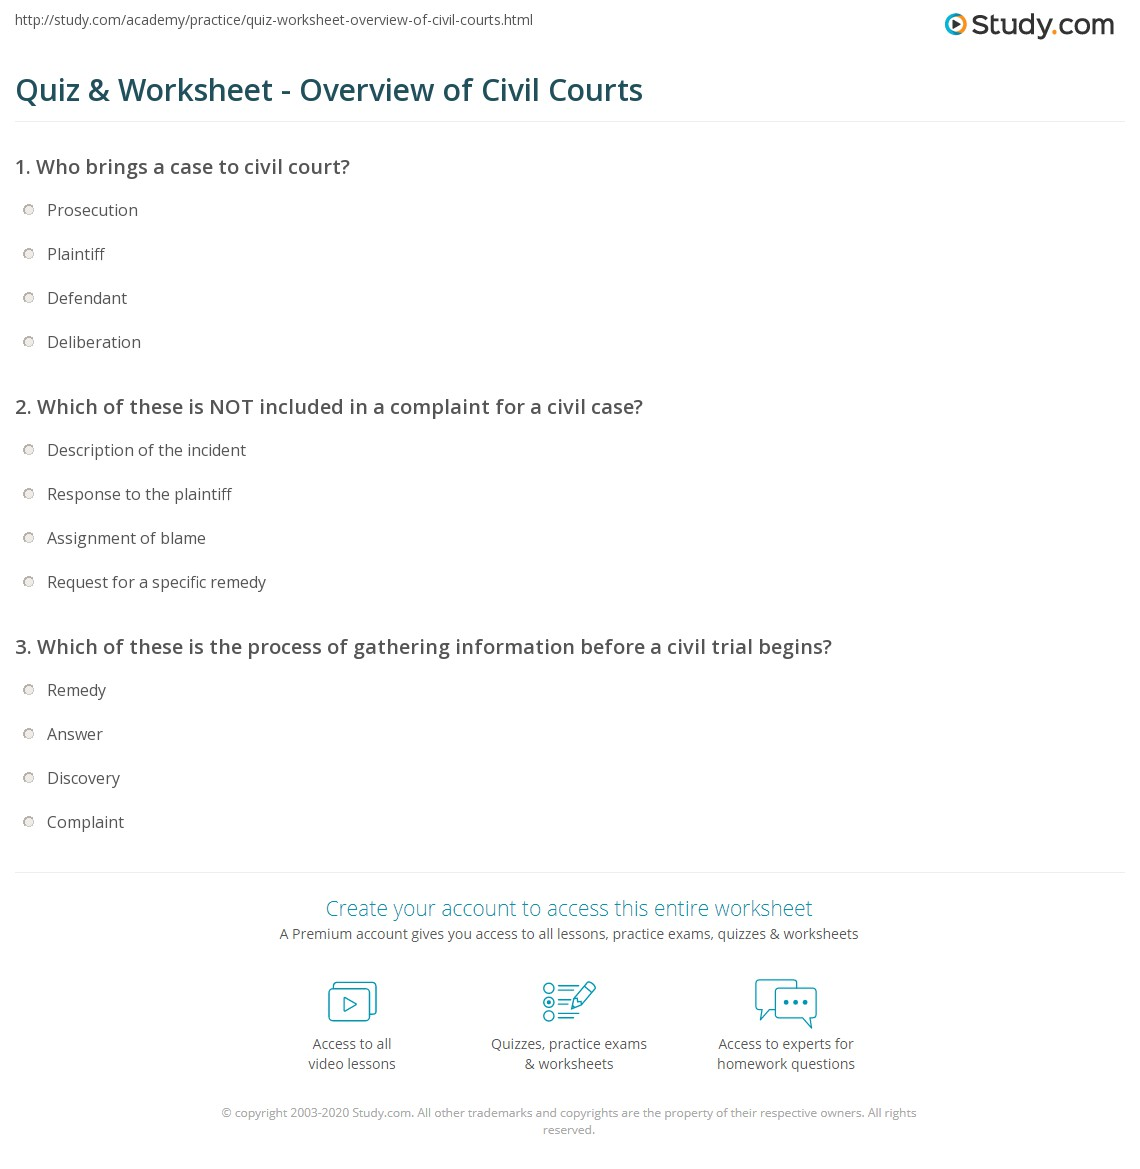 quiz & worksheet - overview of civil courts | study